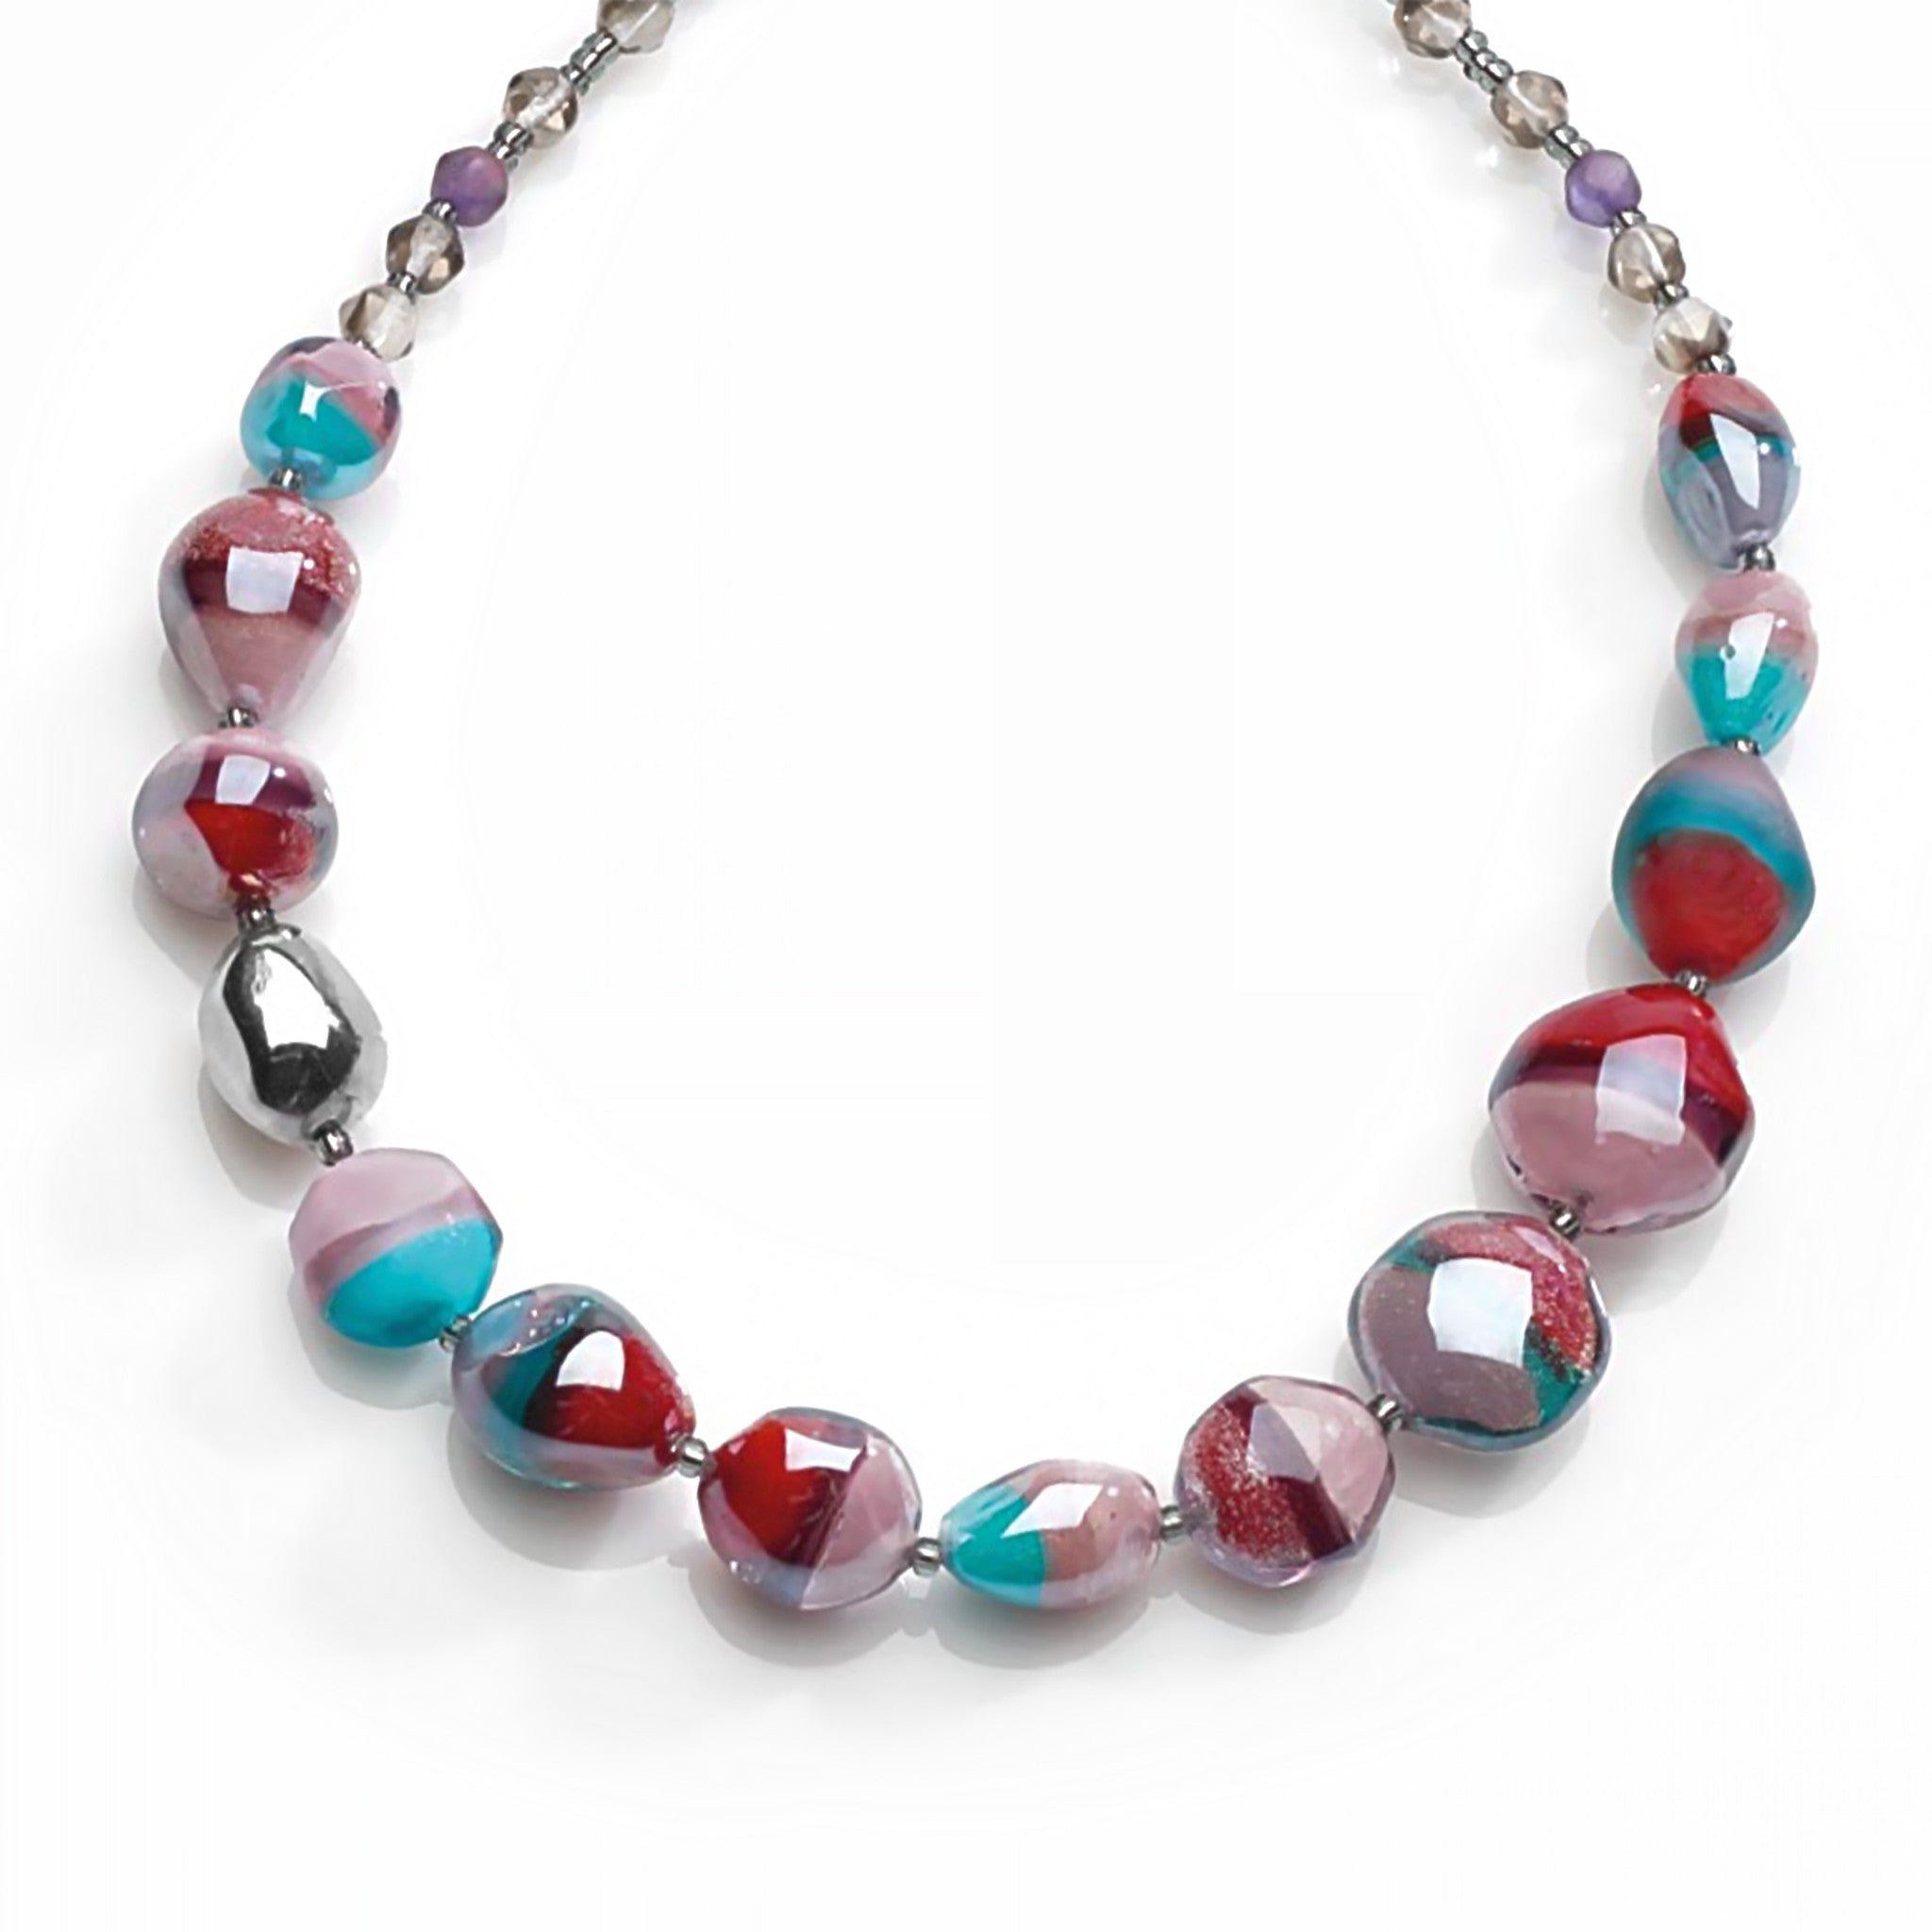 getty large products store the art murano glass necklace